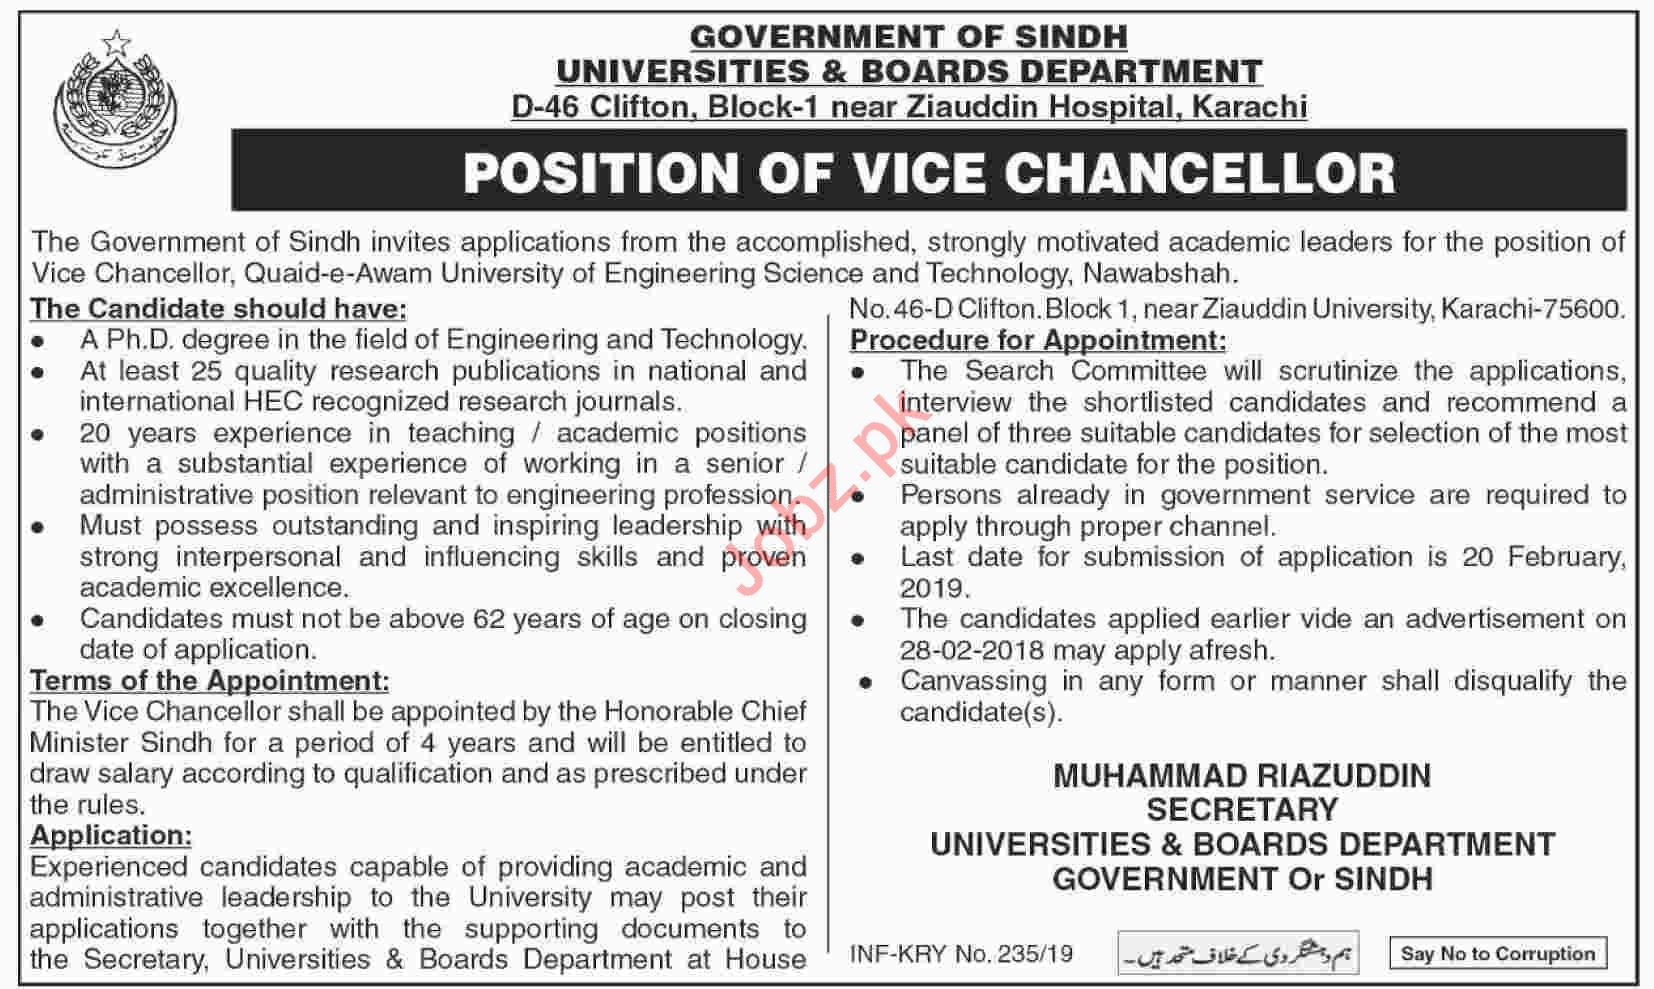 QUEST University Nawabshah Jobs 2019 for Vice Chancellor